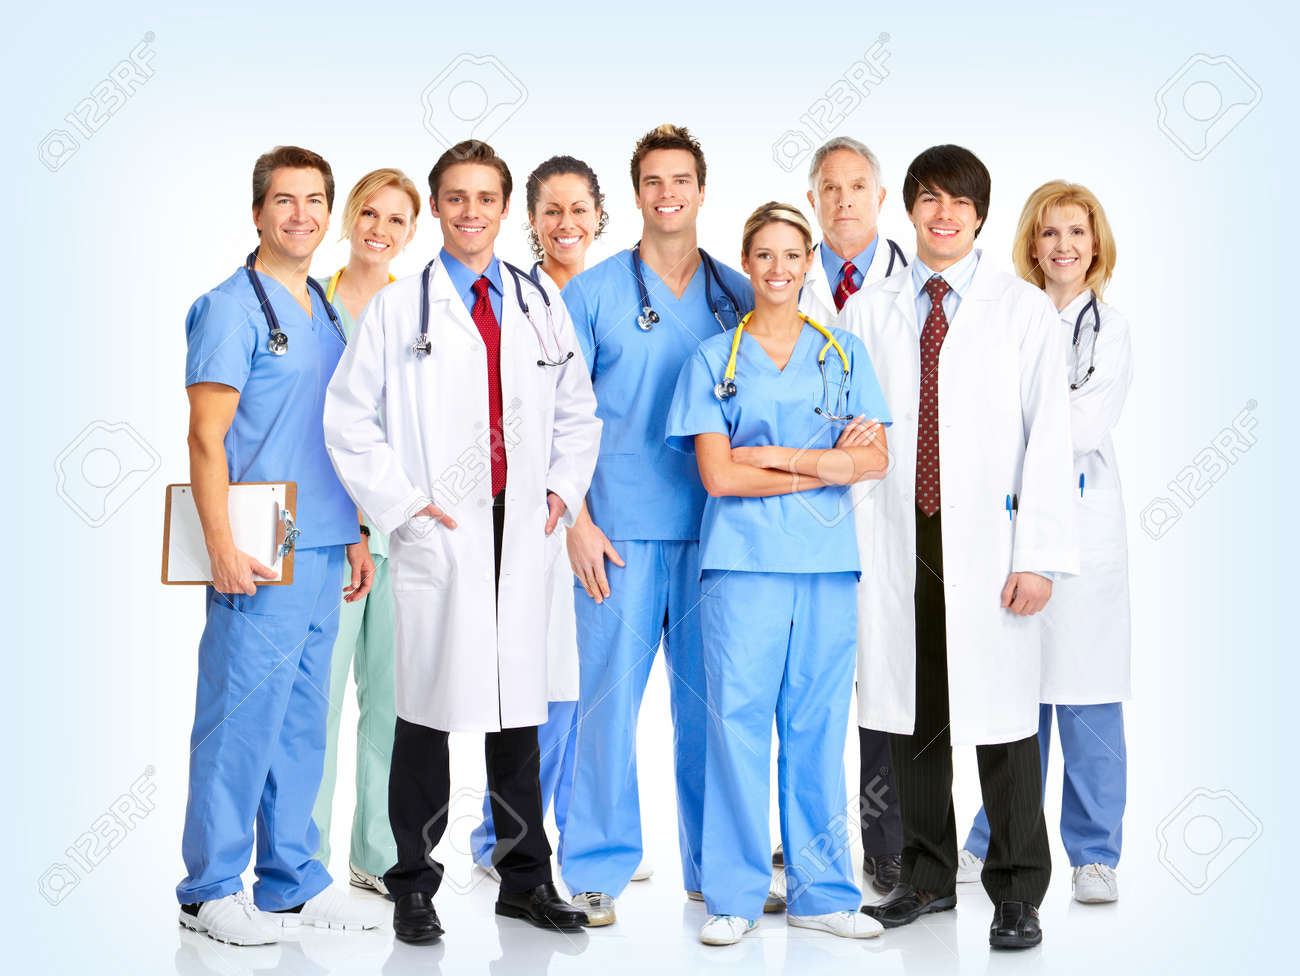 Smiling doctors with stethoscopes. Over blue  background Stock Photo - 8950296